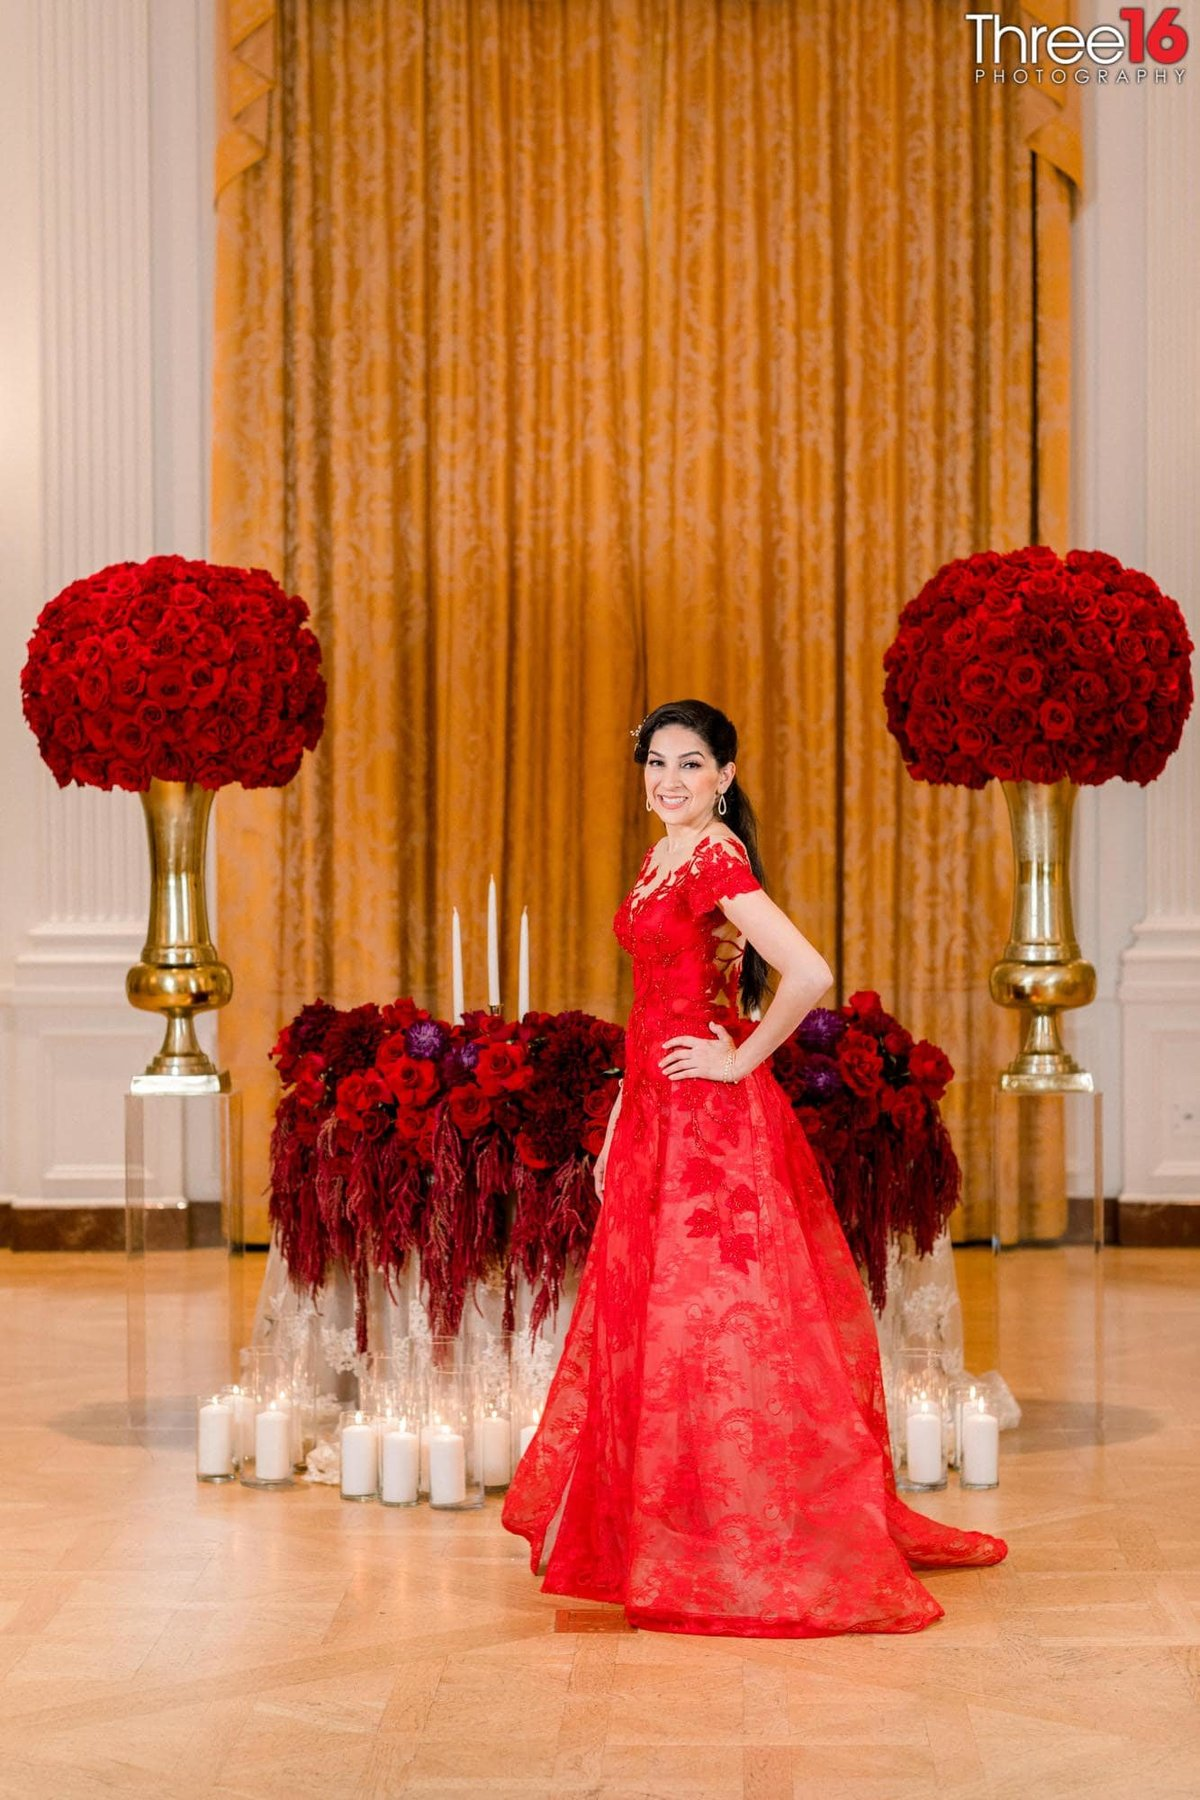 Bride dressed in a red dress stands in front of the sweetheart table